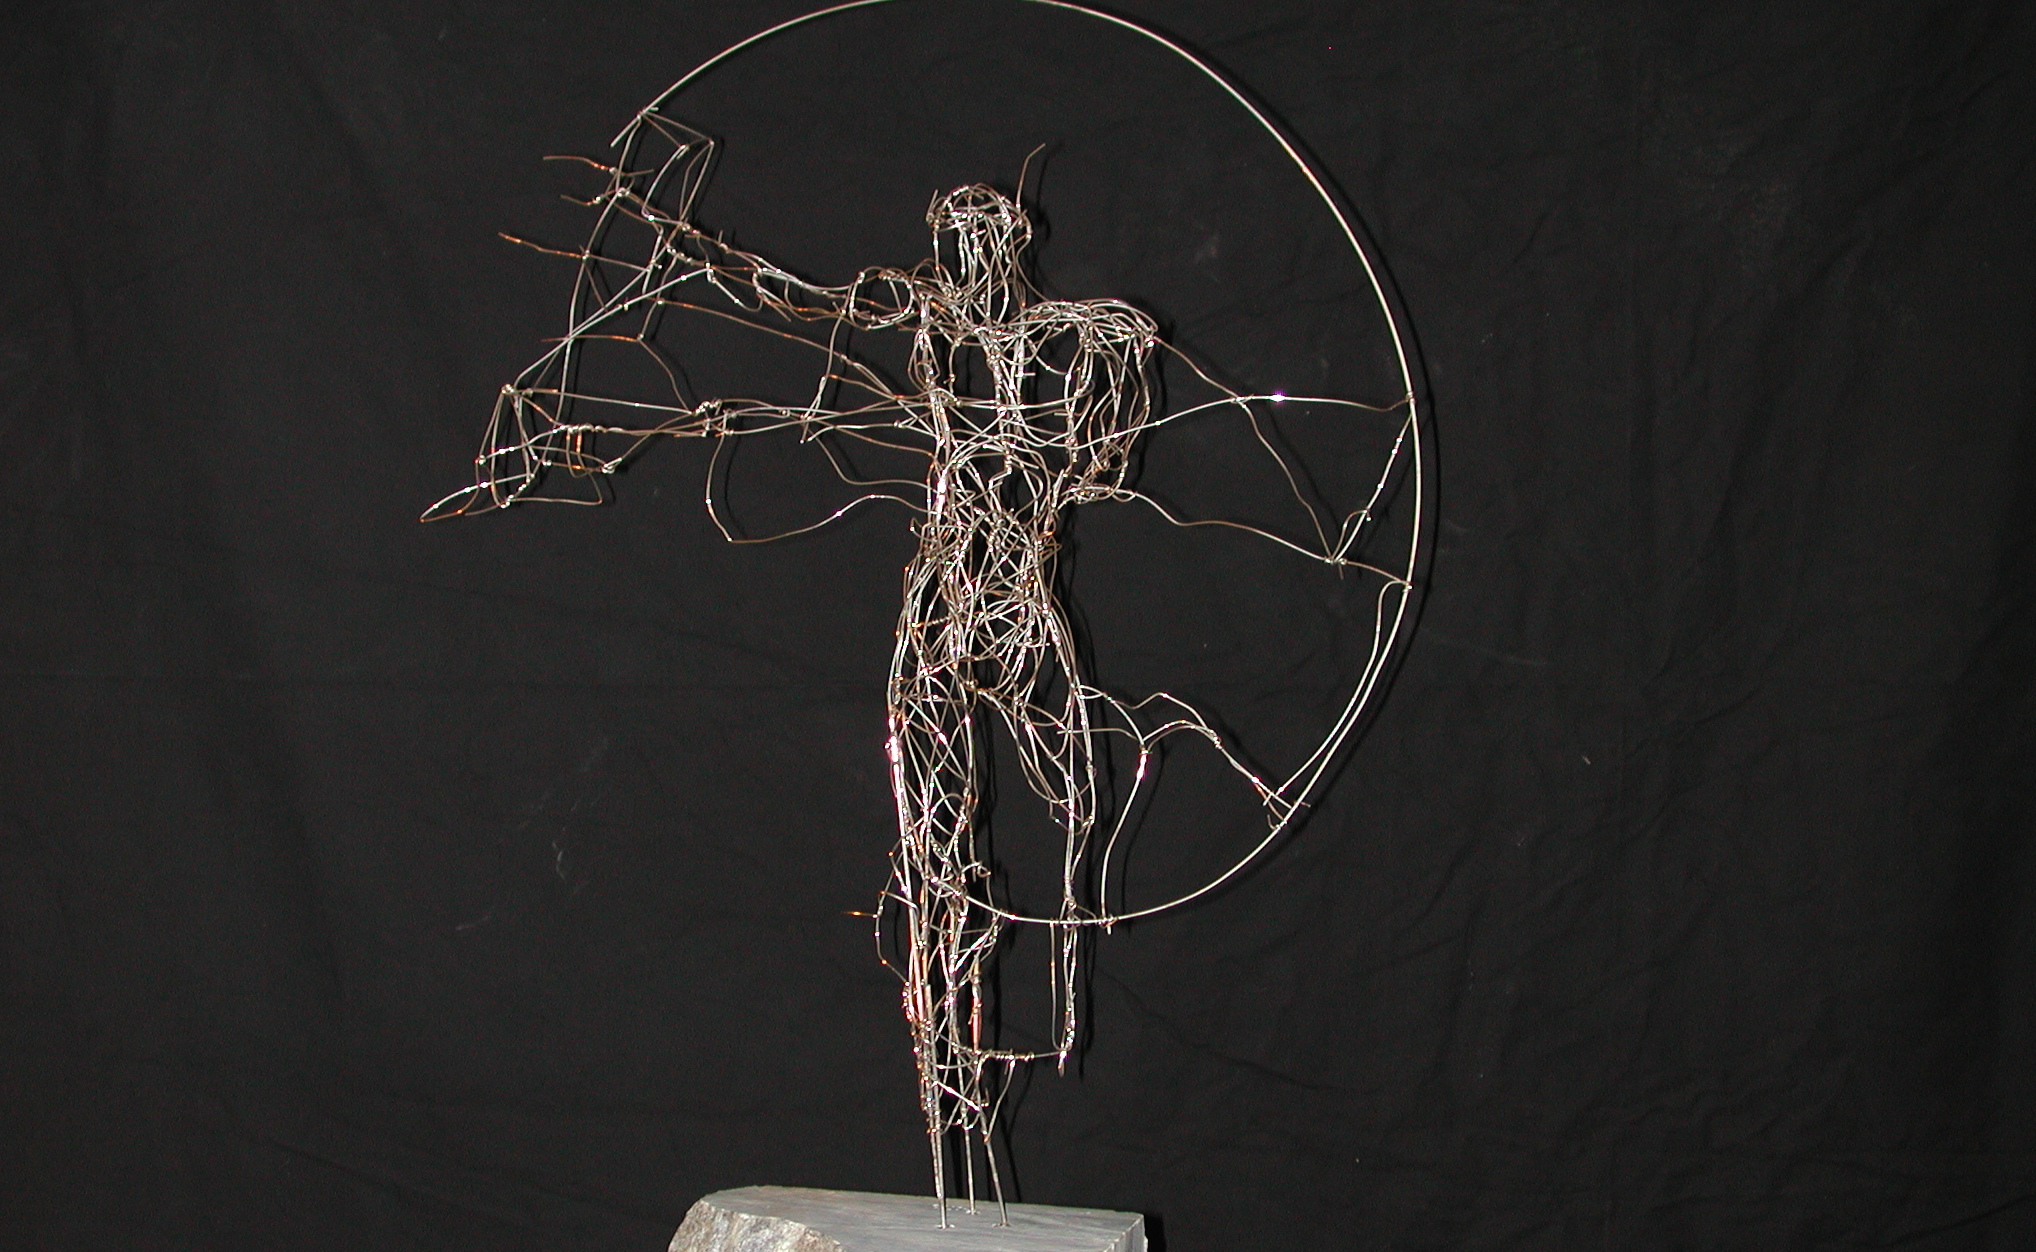 """Central Frequency from Right Side"", copper wire, nickel-plated, 55 x 45 x 25 cm, 2001"